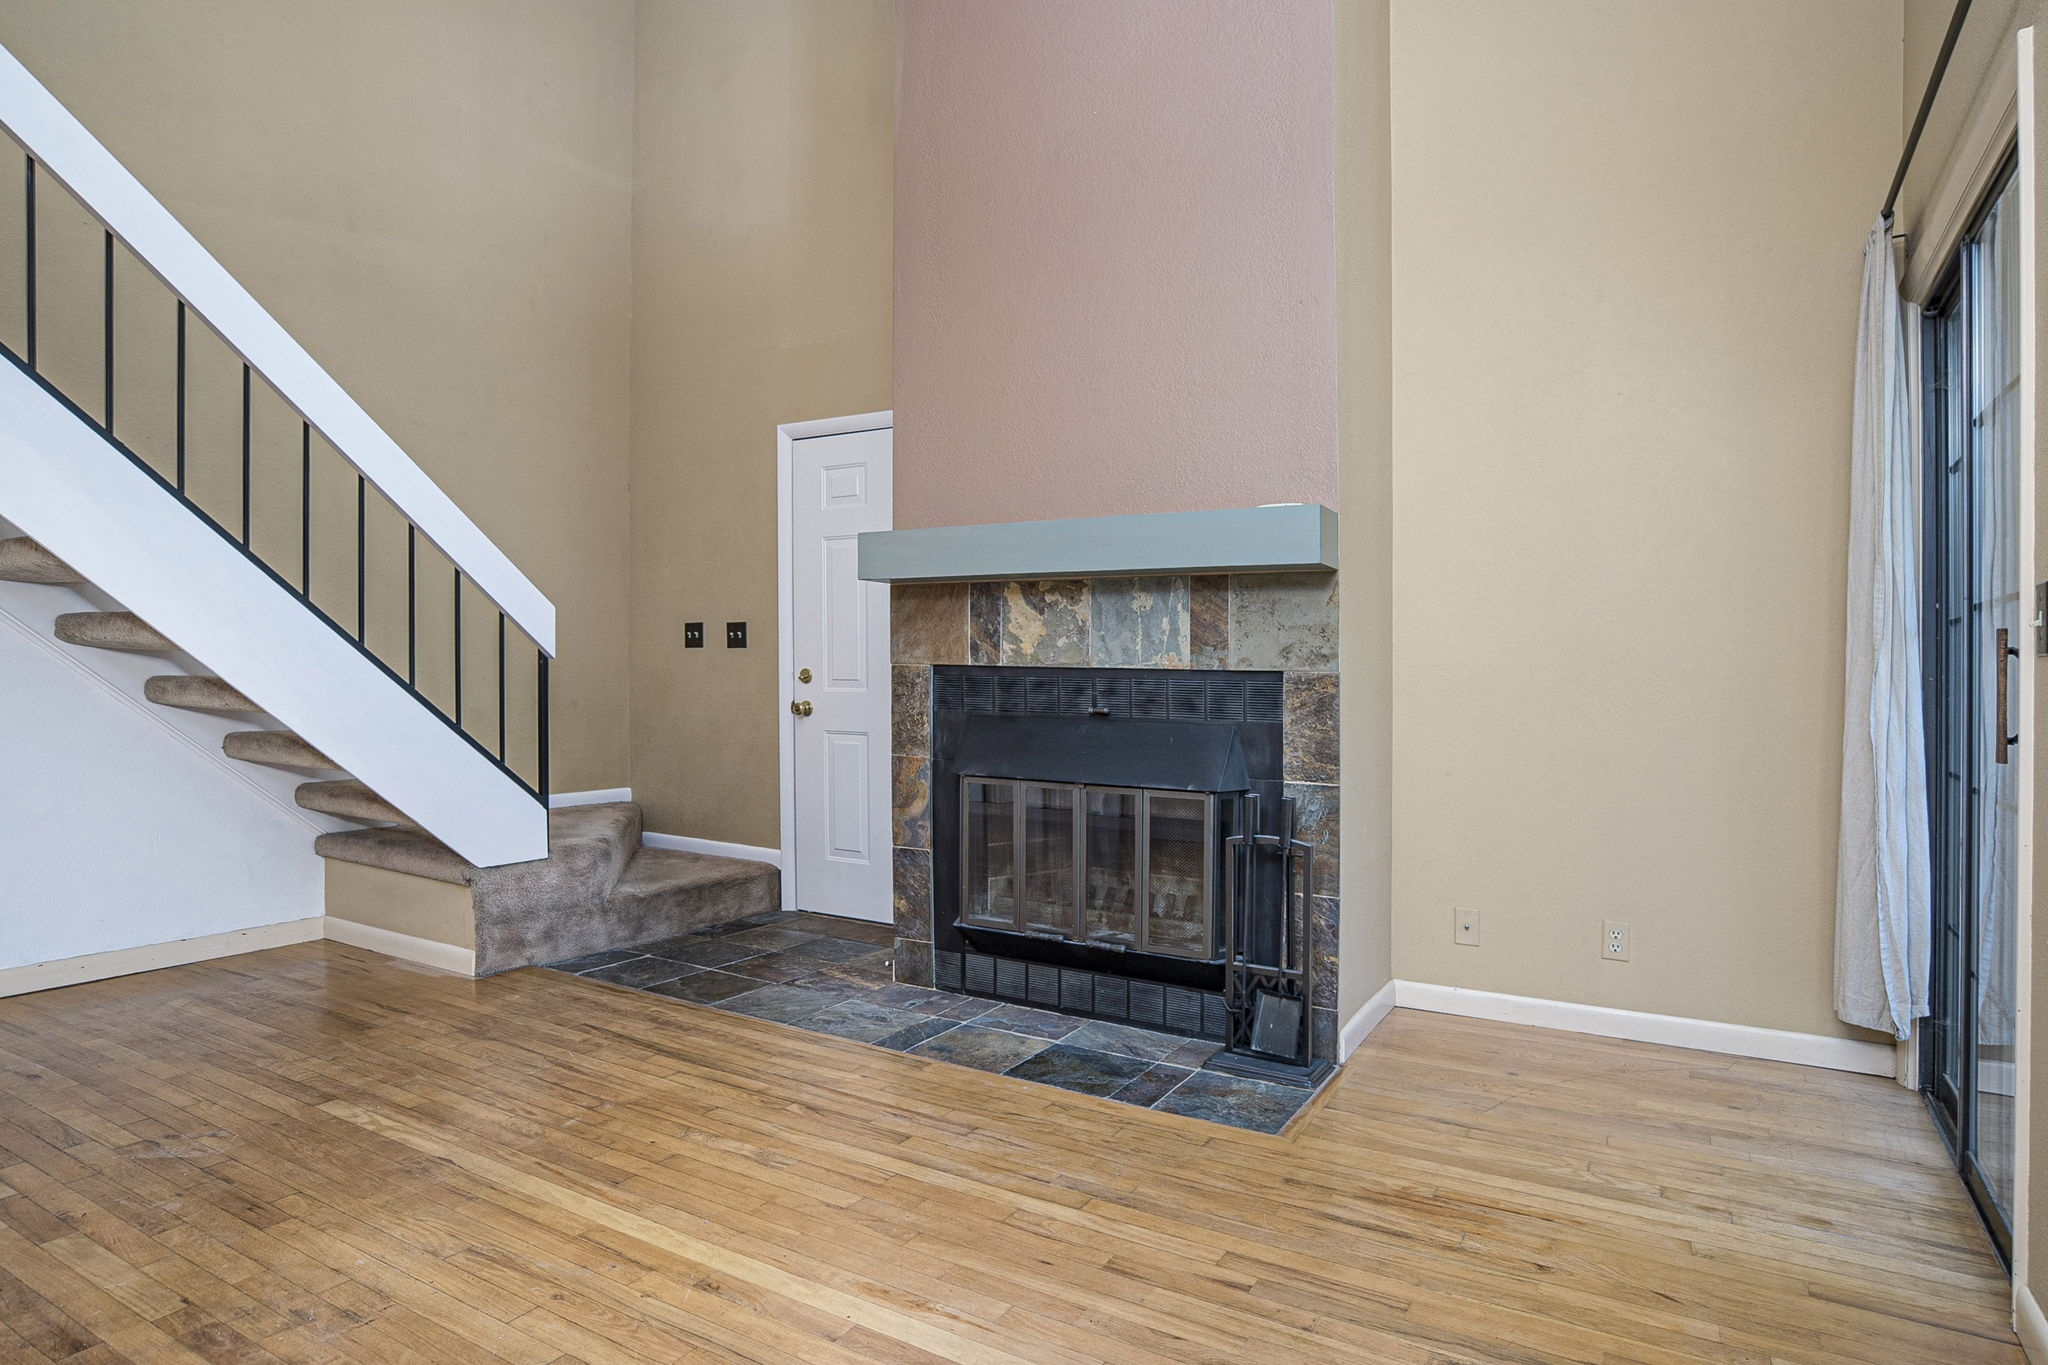 FIREPLACE FOR COZY NIGHTS!